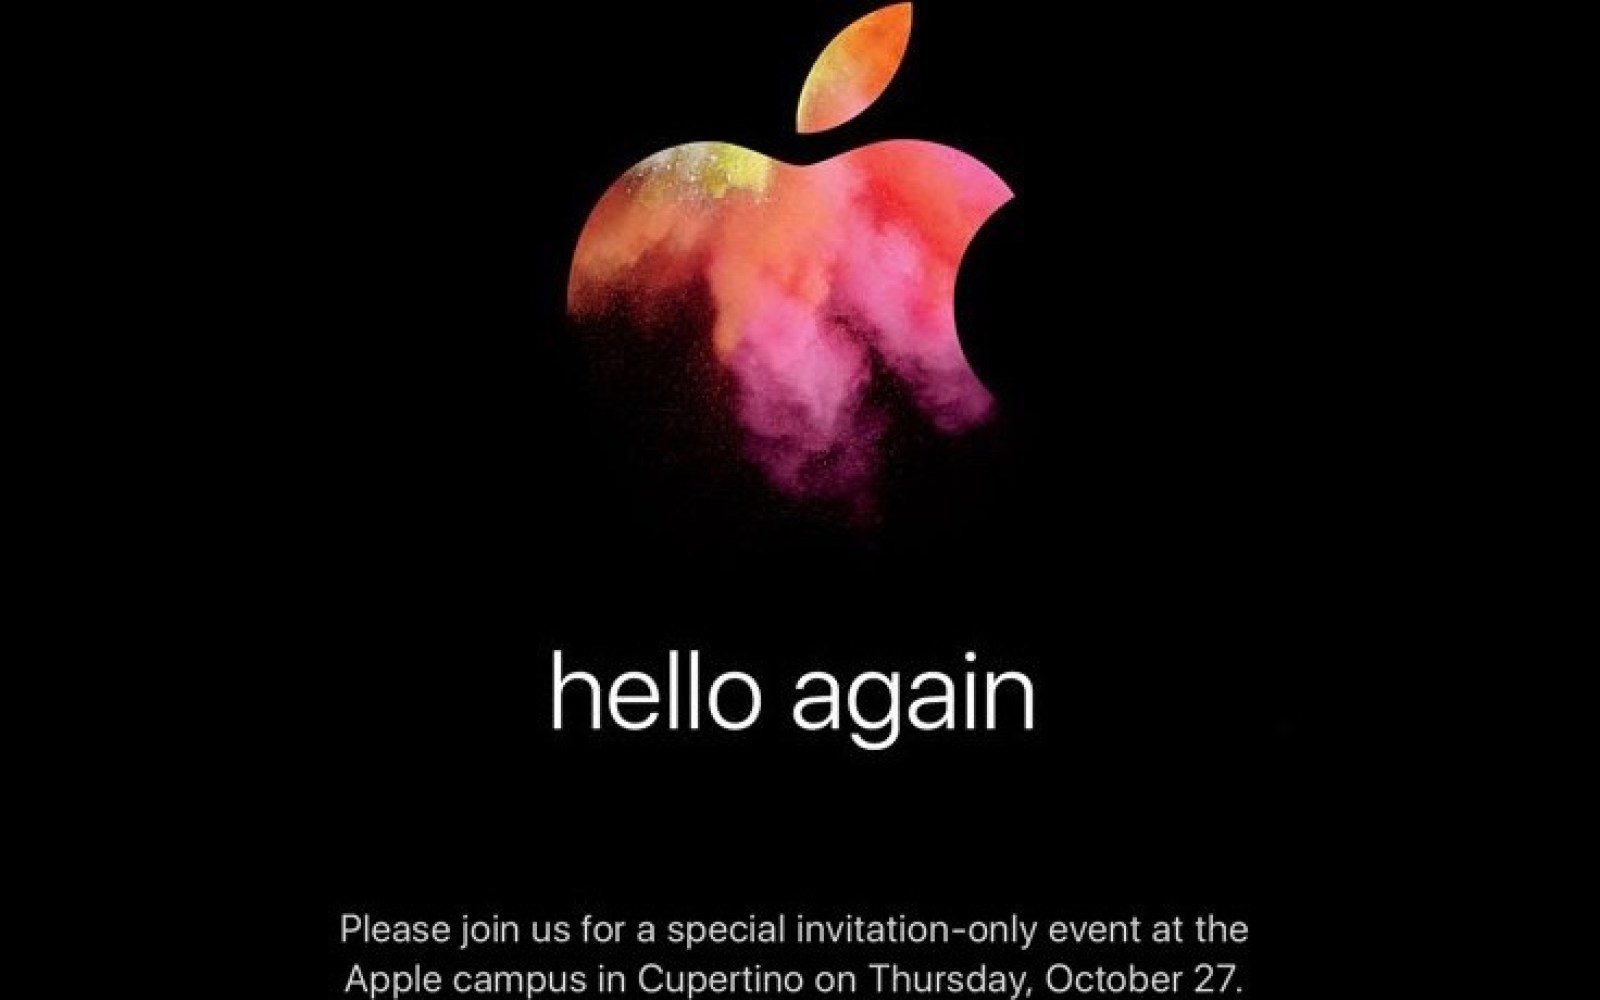 Apple's expected Mac event on October 27 is official: 'hello again'